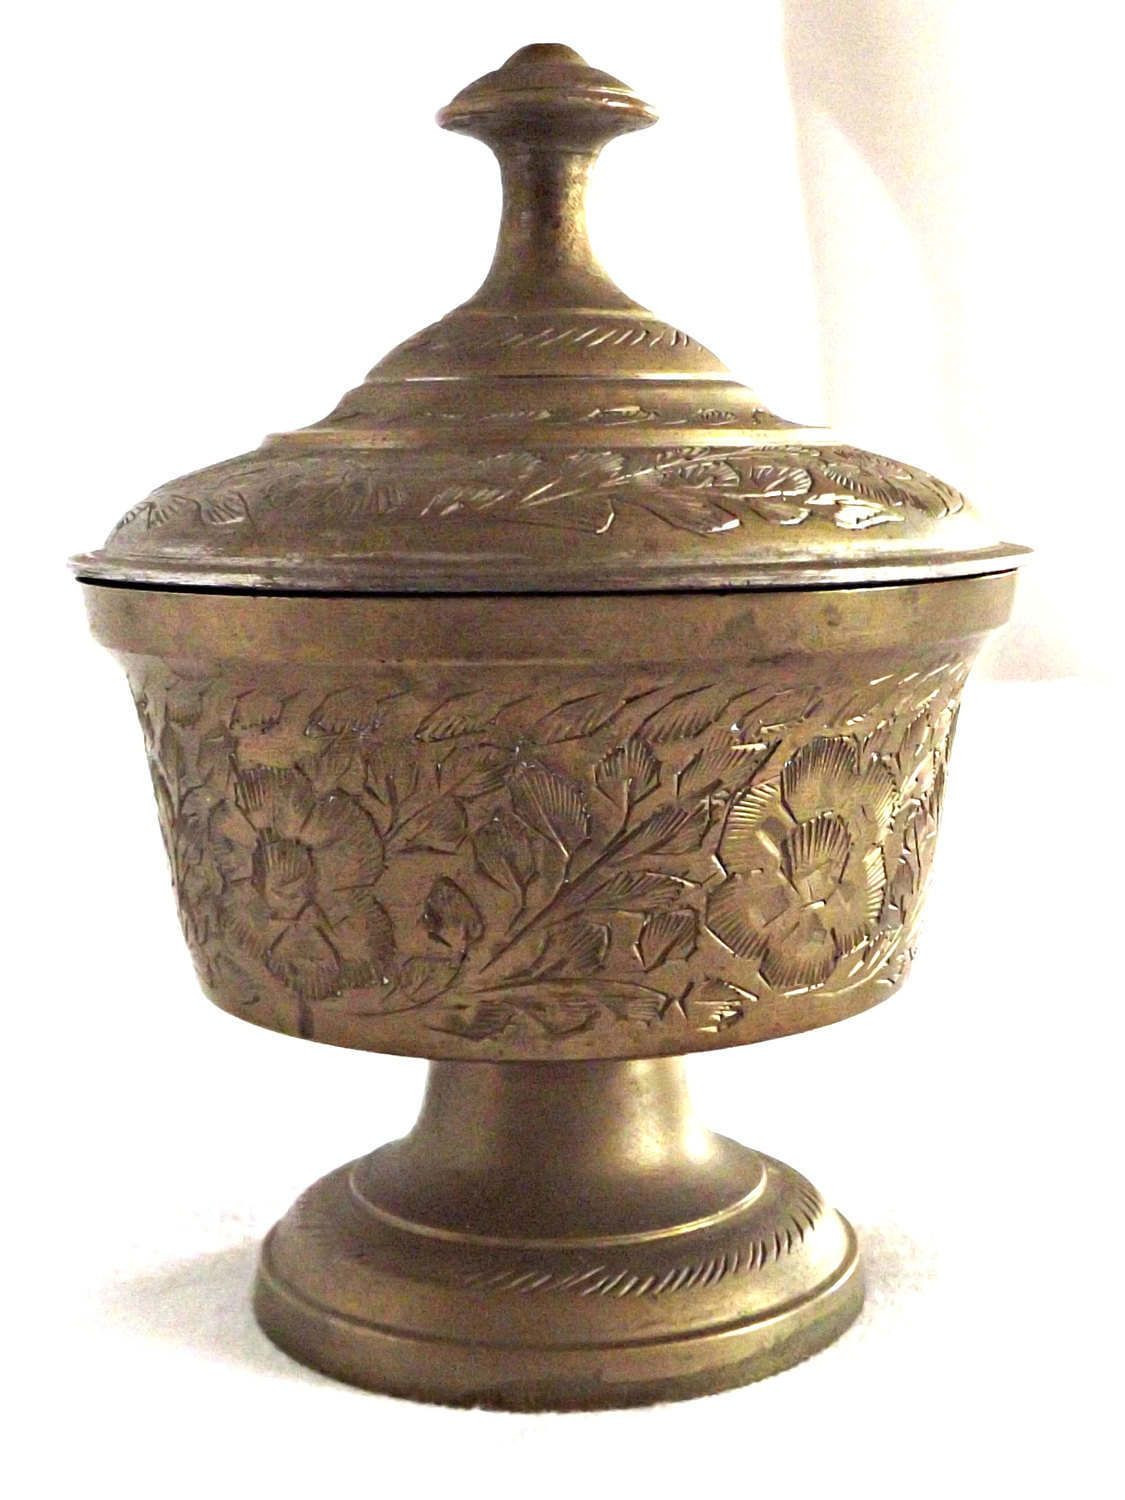 brass bud vase india of etched brass lidded container brass storage pot brass jar with lid throughout etched brass lidded container brass storage pot brass jar with lid retro brass home decor by agedwithgracevintage on etsy